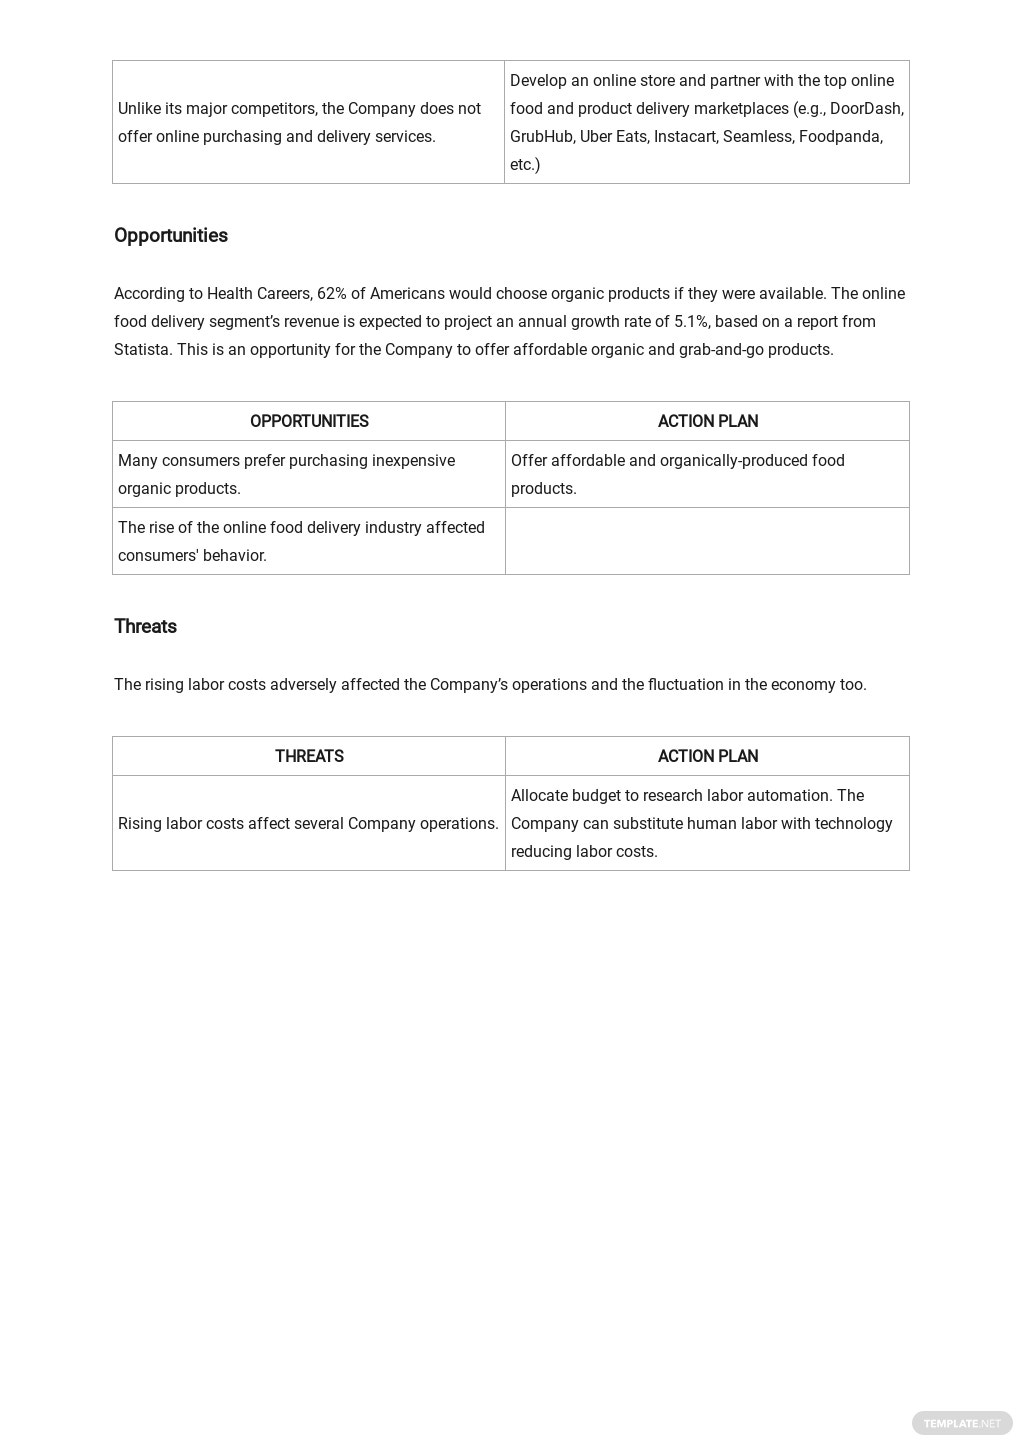 SWOT Analysis Template for Business Plan 2.jpe